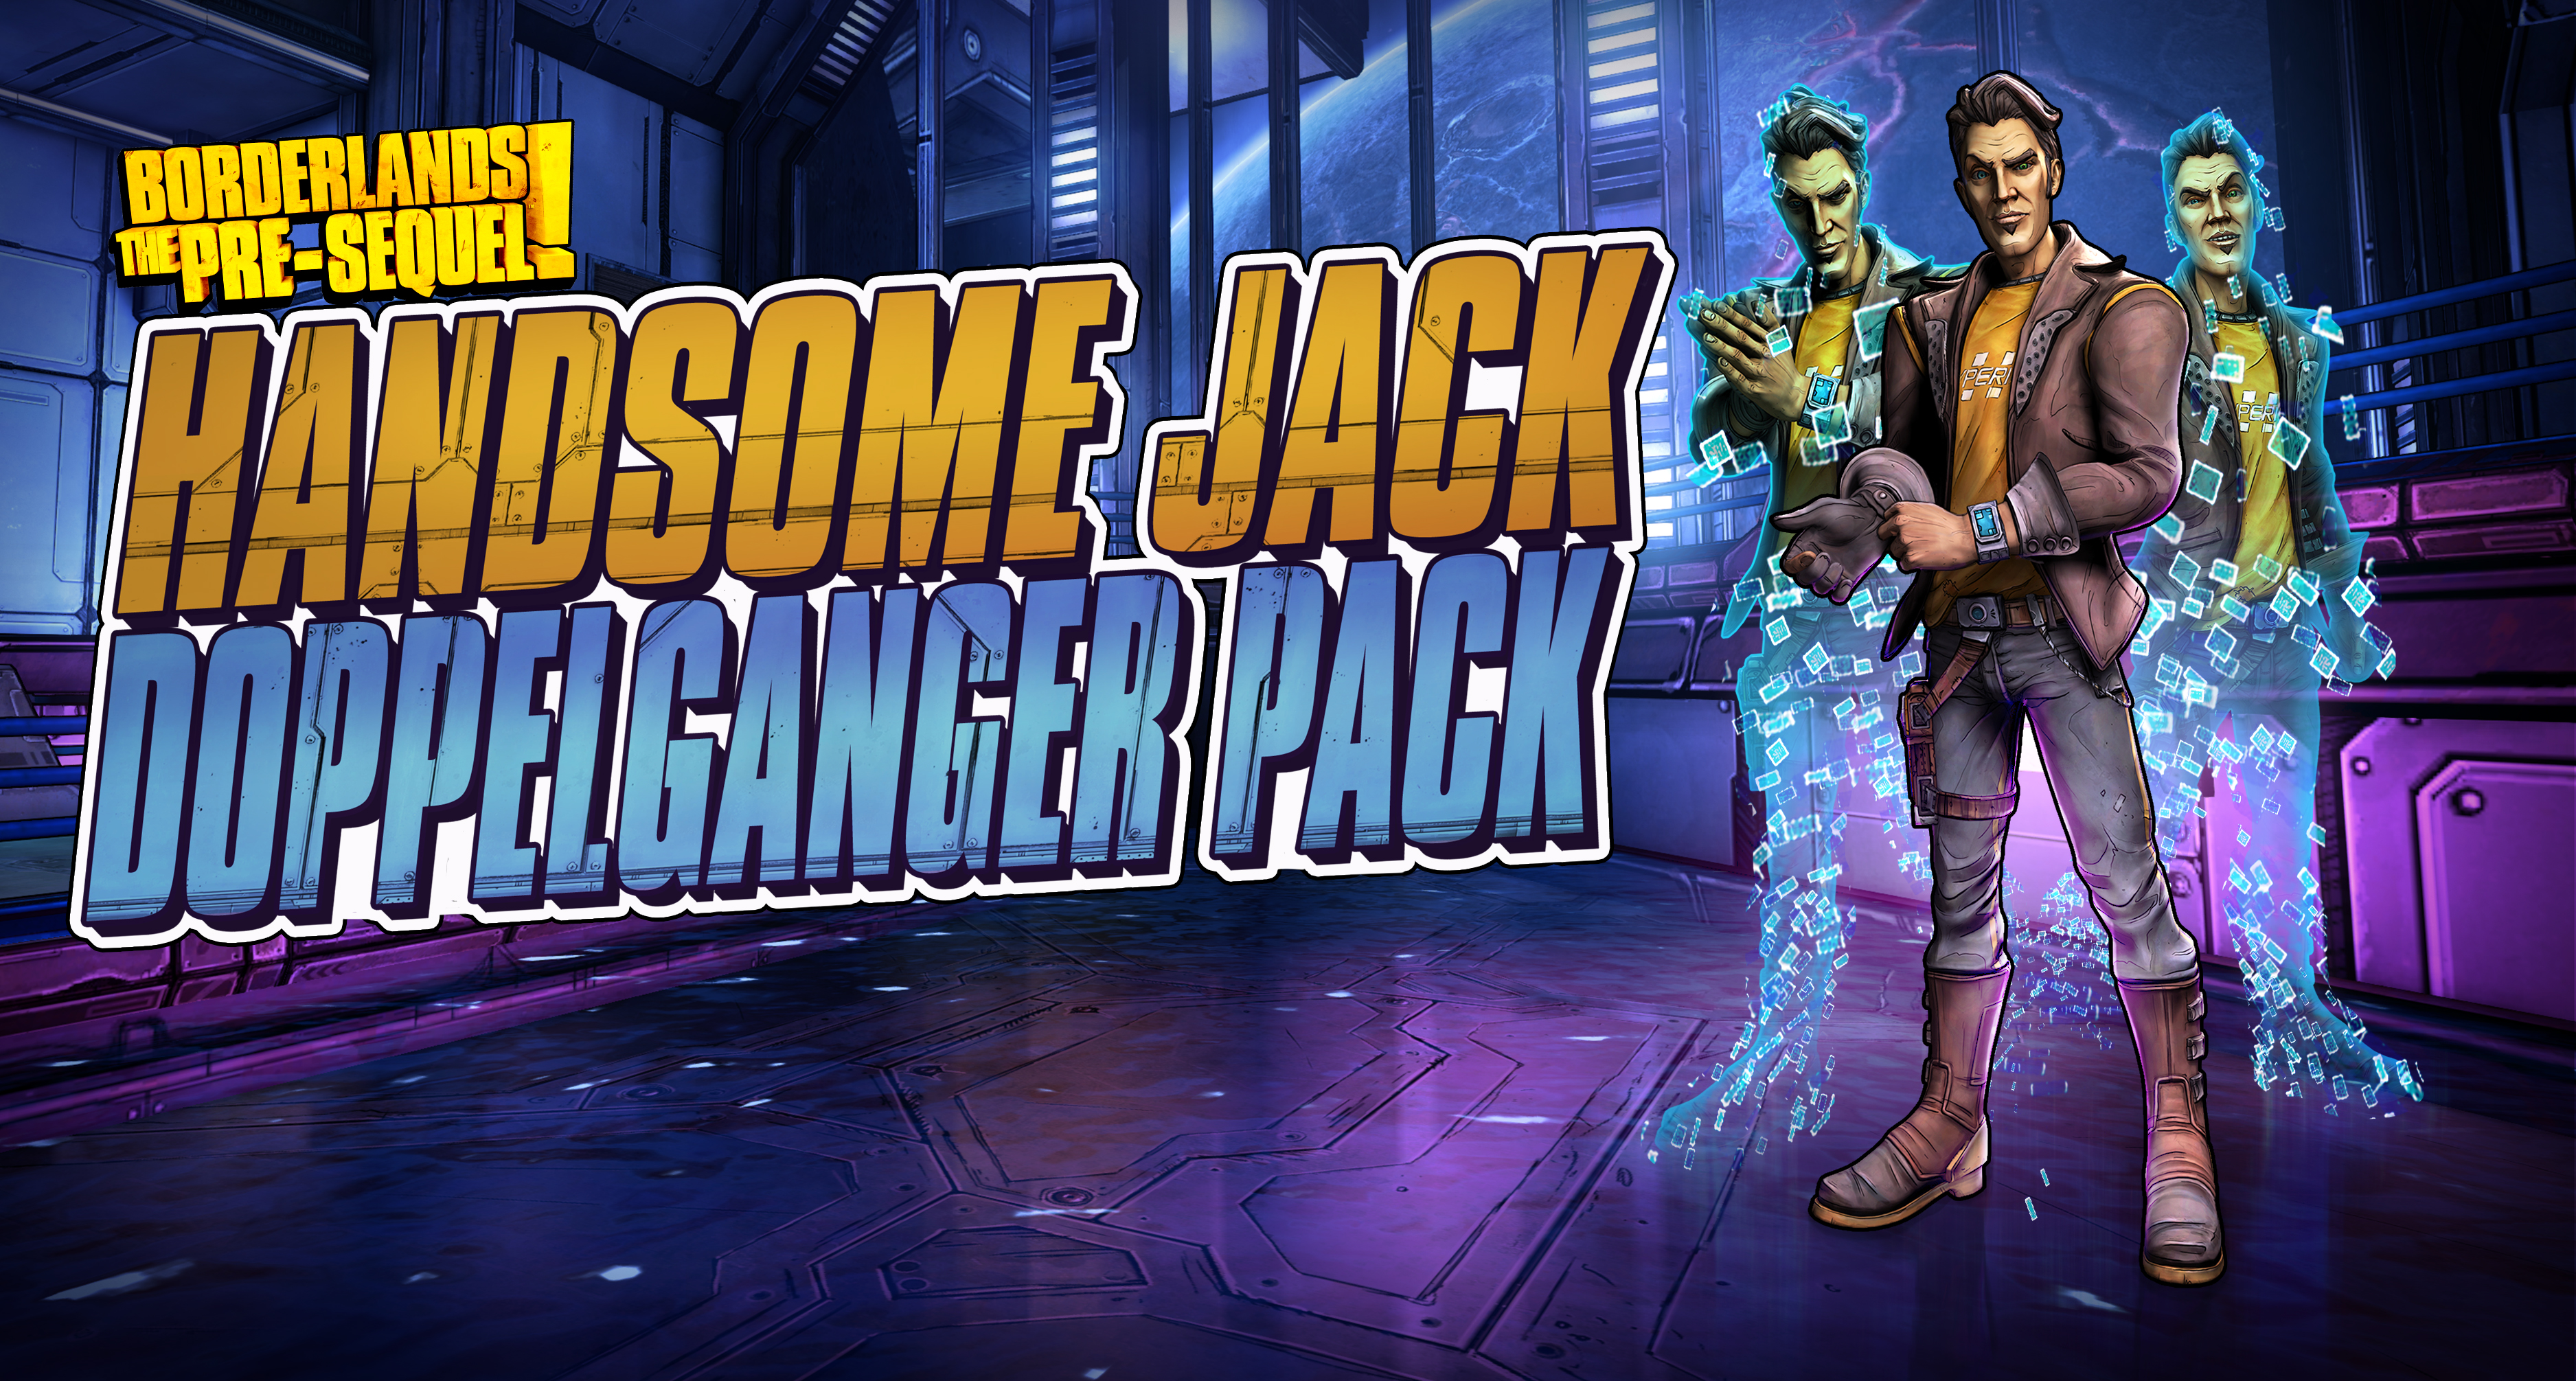 Handsome Jack coming to Borderlands: The Pre-Sequel as a playable character